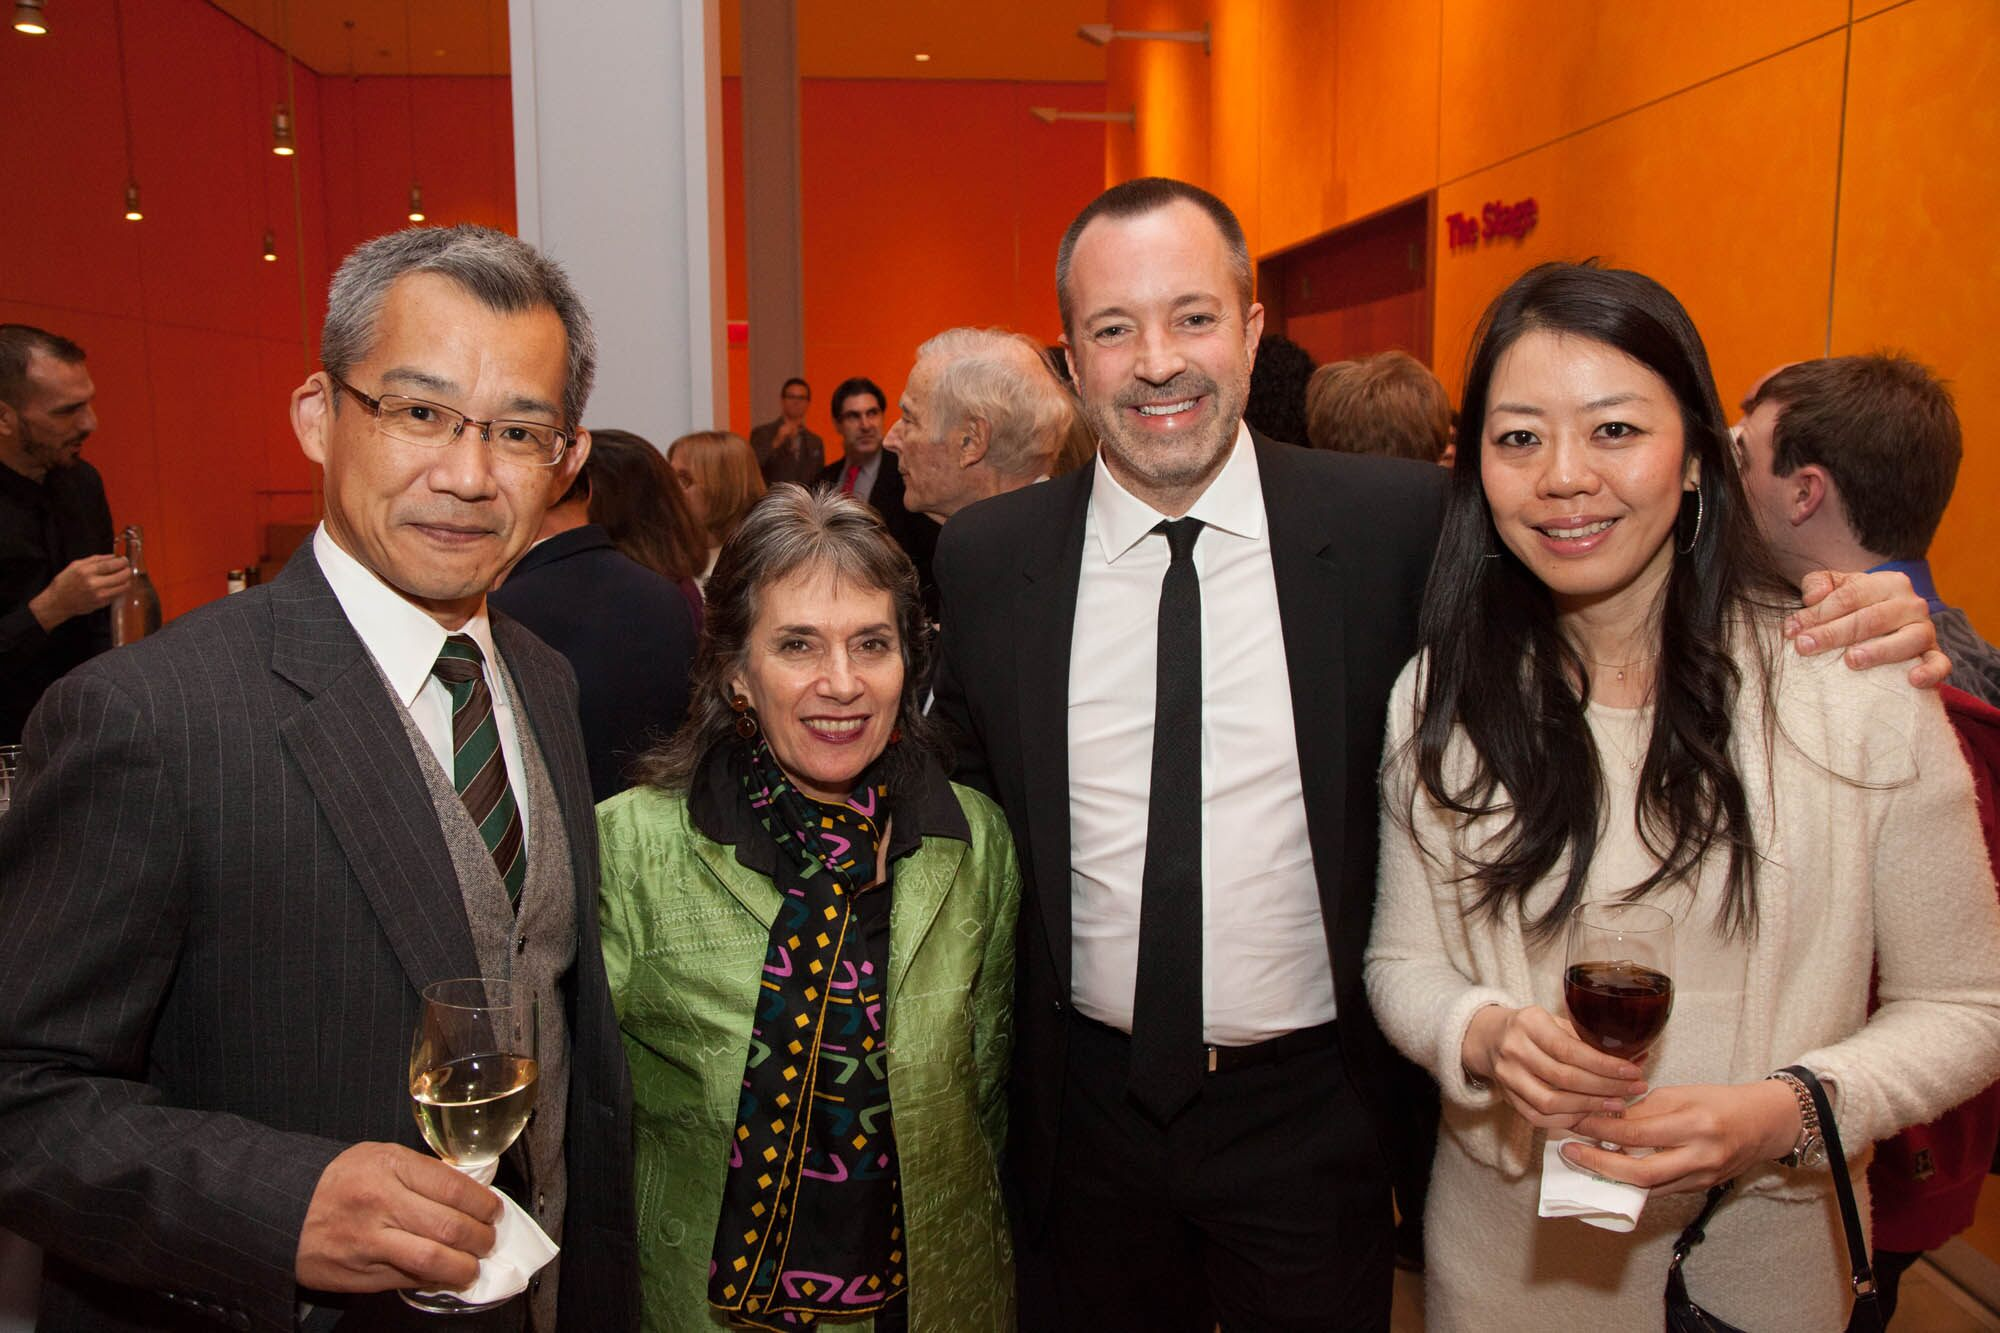 Raita Nakashima, Annette Insdorf, Bill Kramer, and Kayo Wahsio (from left to right).